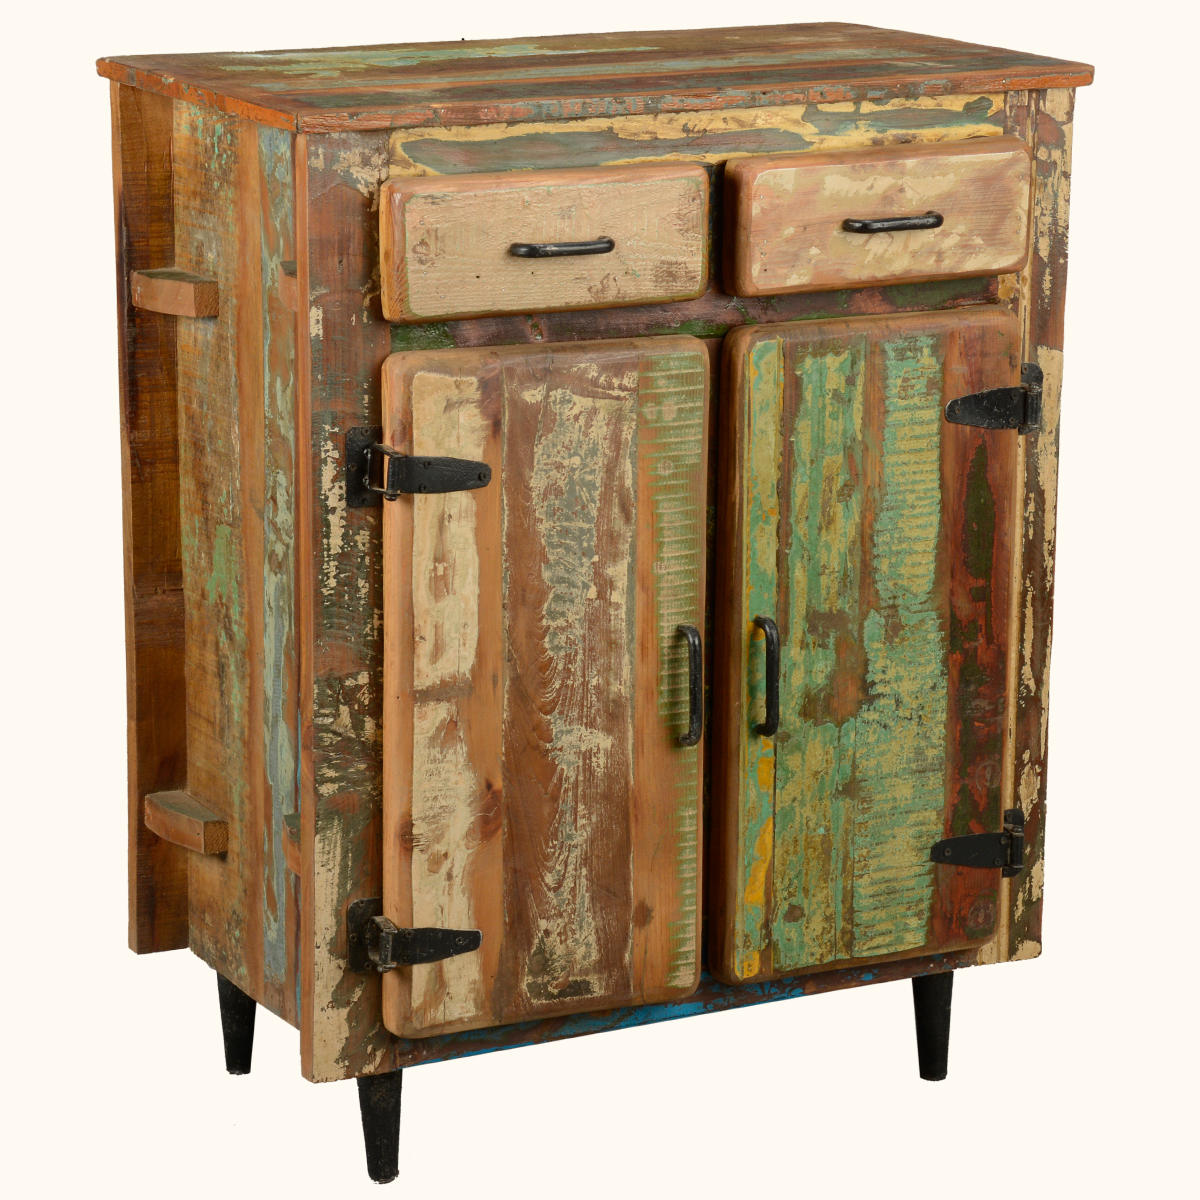 Reclaimed Old Wood Rustic Kitchen Utility Storage Cabinet Buffet Table Sideboard Ebay